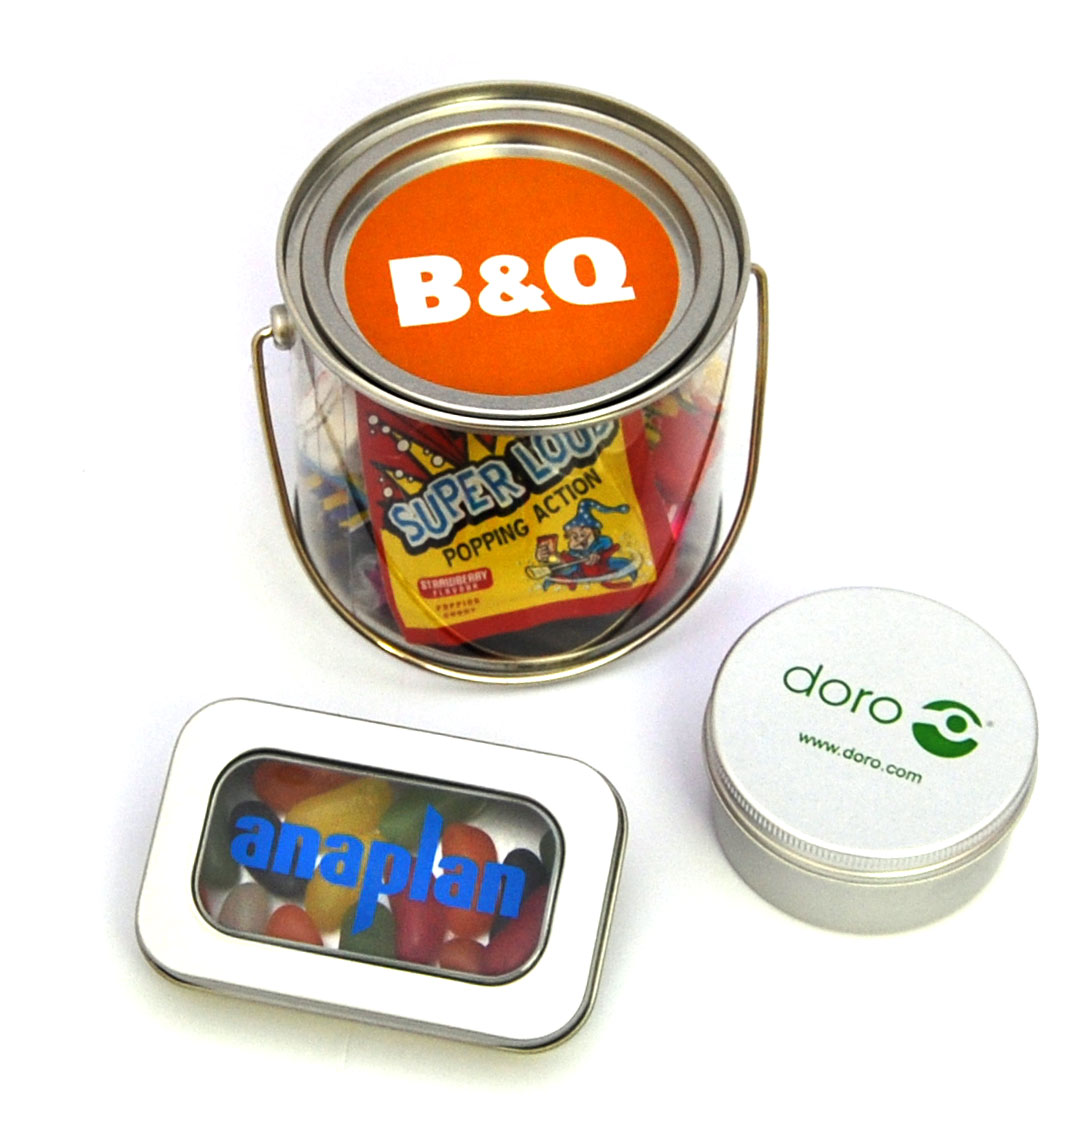 Personalised & Promotional Sweets UK - Custom, Branded, Logo & Corporate Sweets